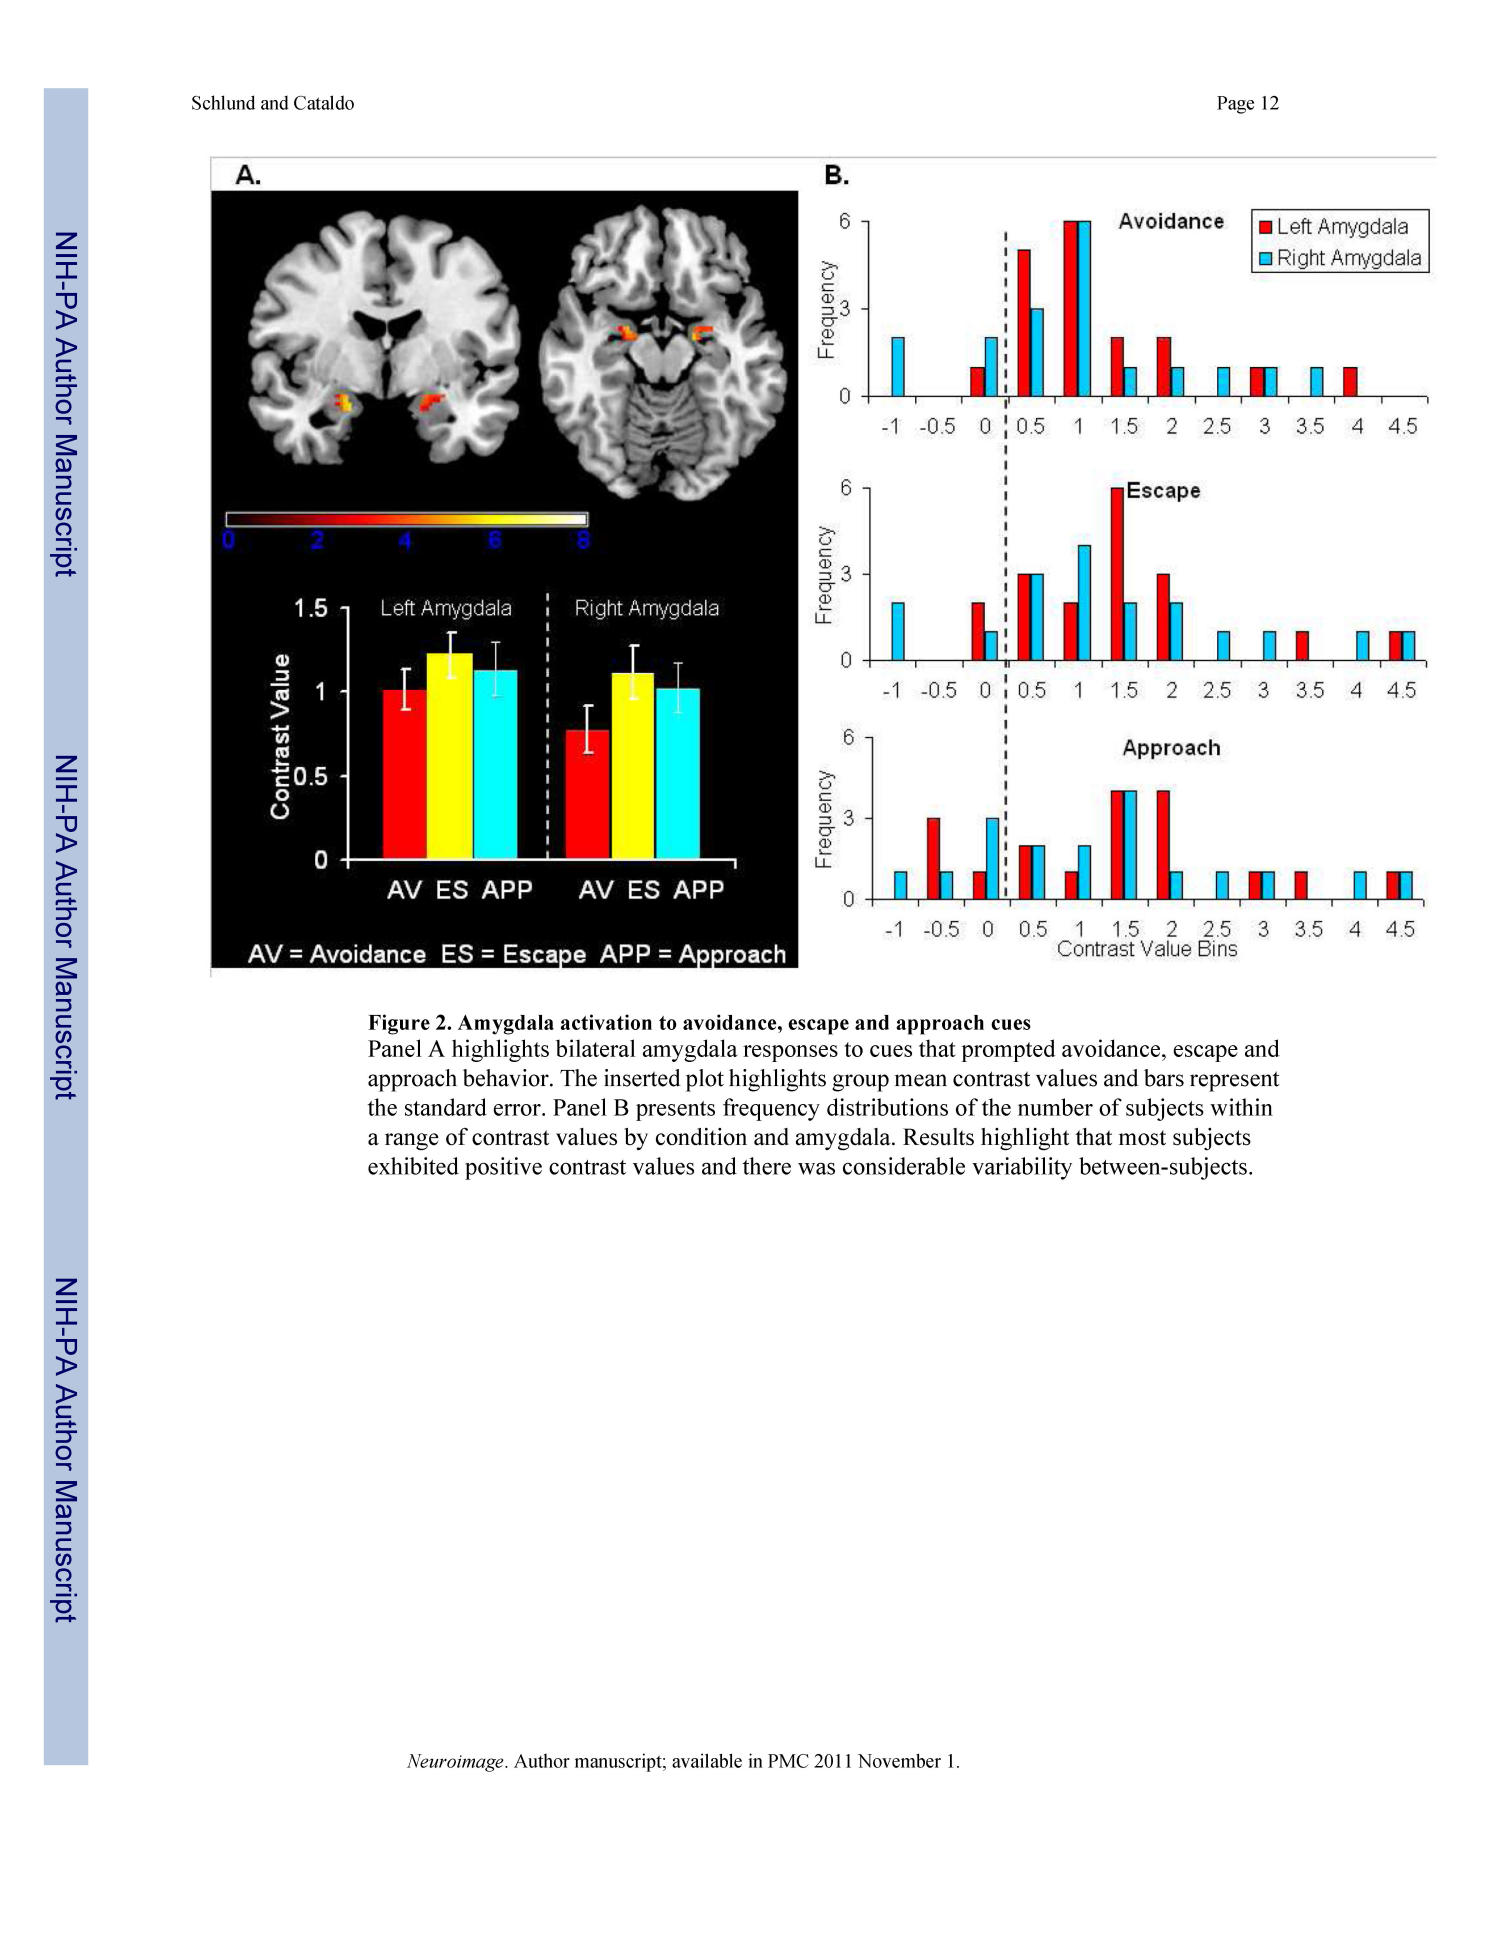 Amygdala involvement in human avoidance, escape and approach behavior                                                                                                      12